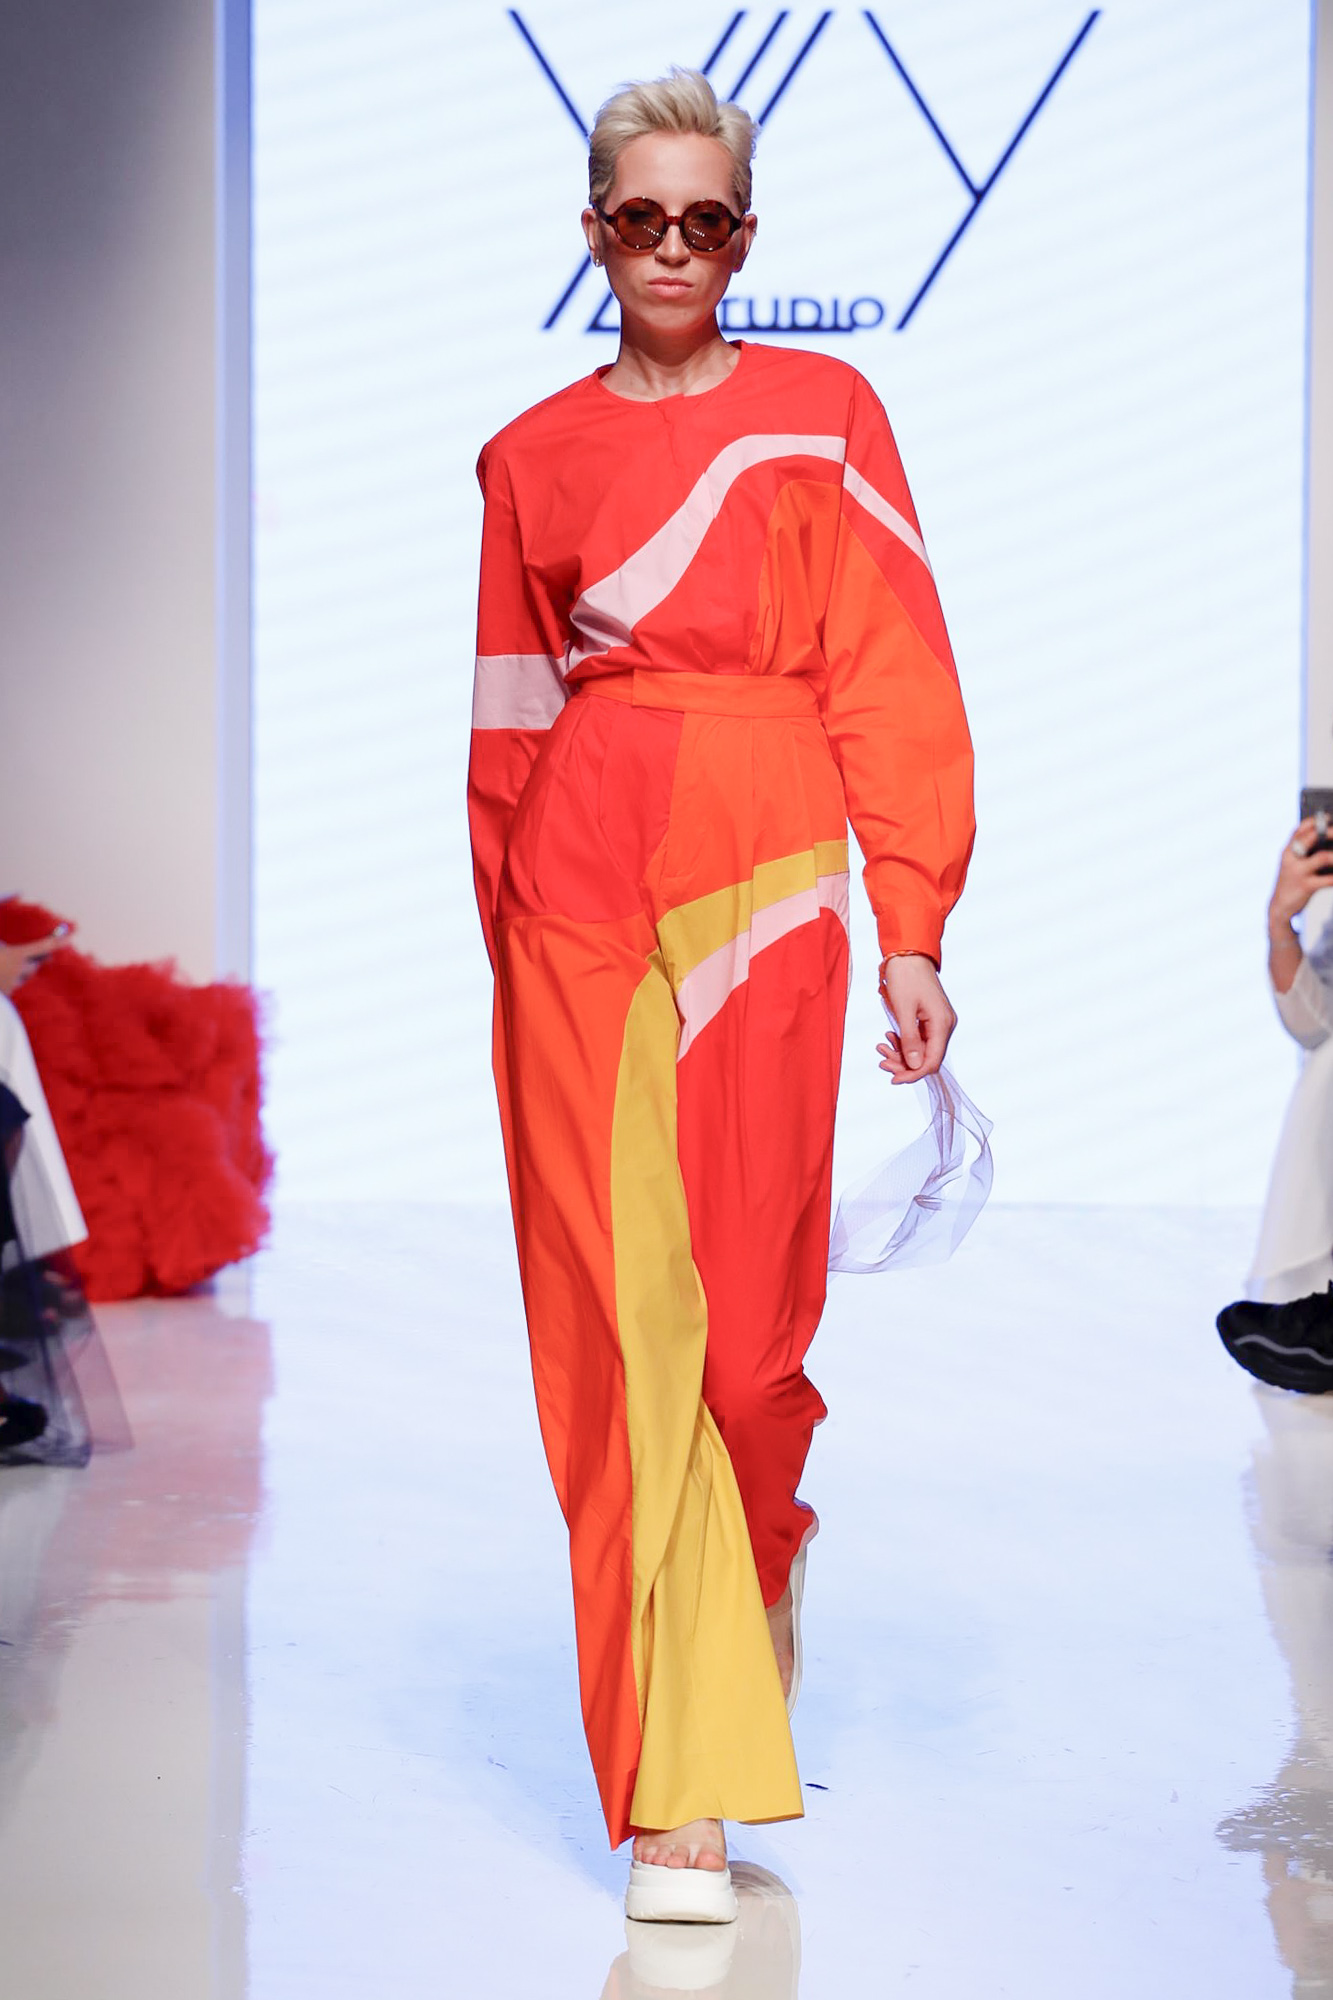 YLY-Studio-Arab-Fashion-Week-SS20-Dubai-5755